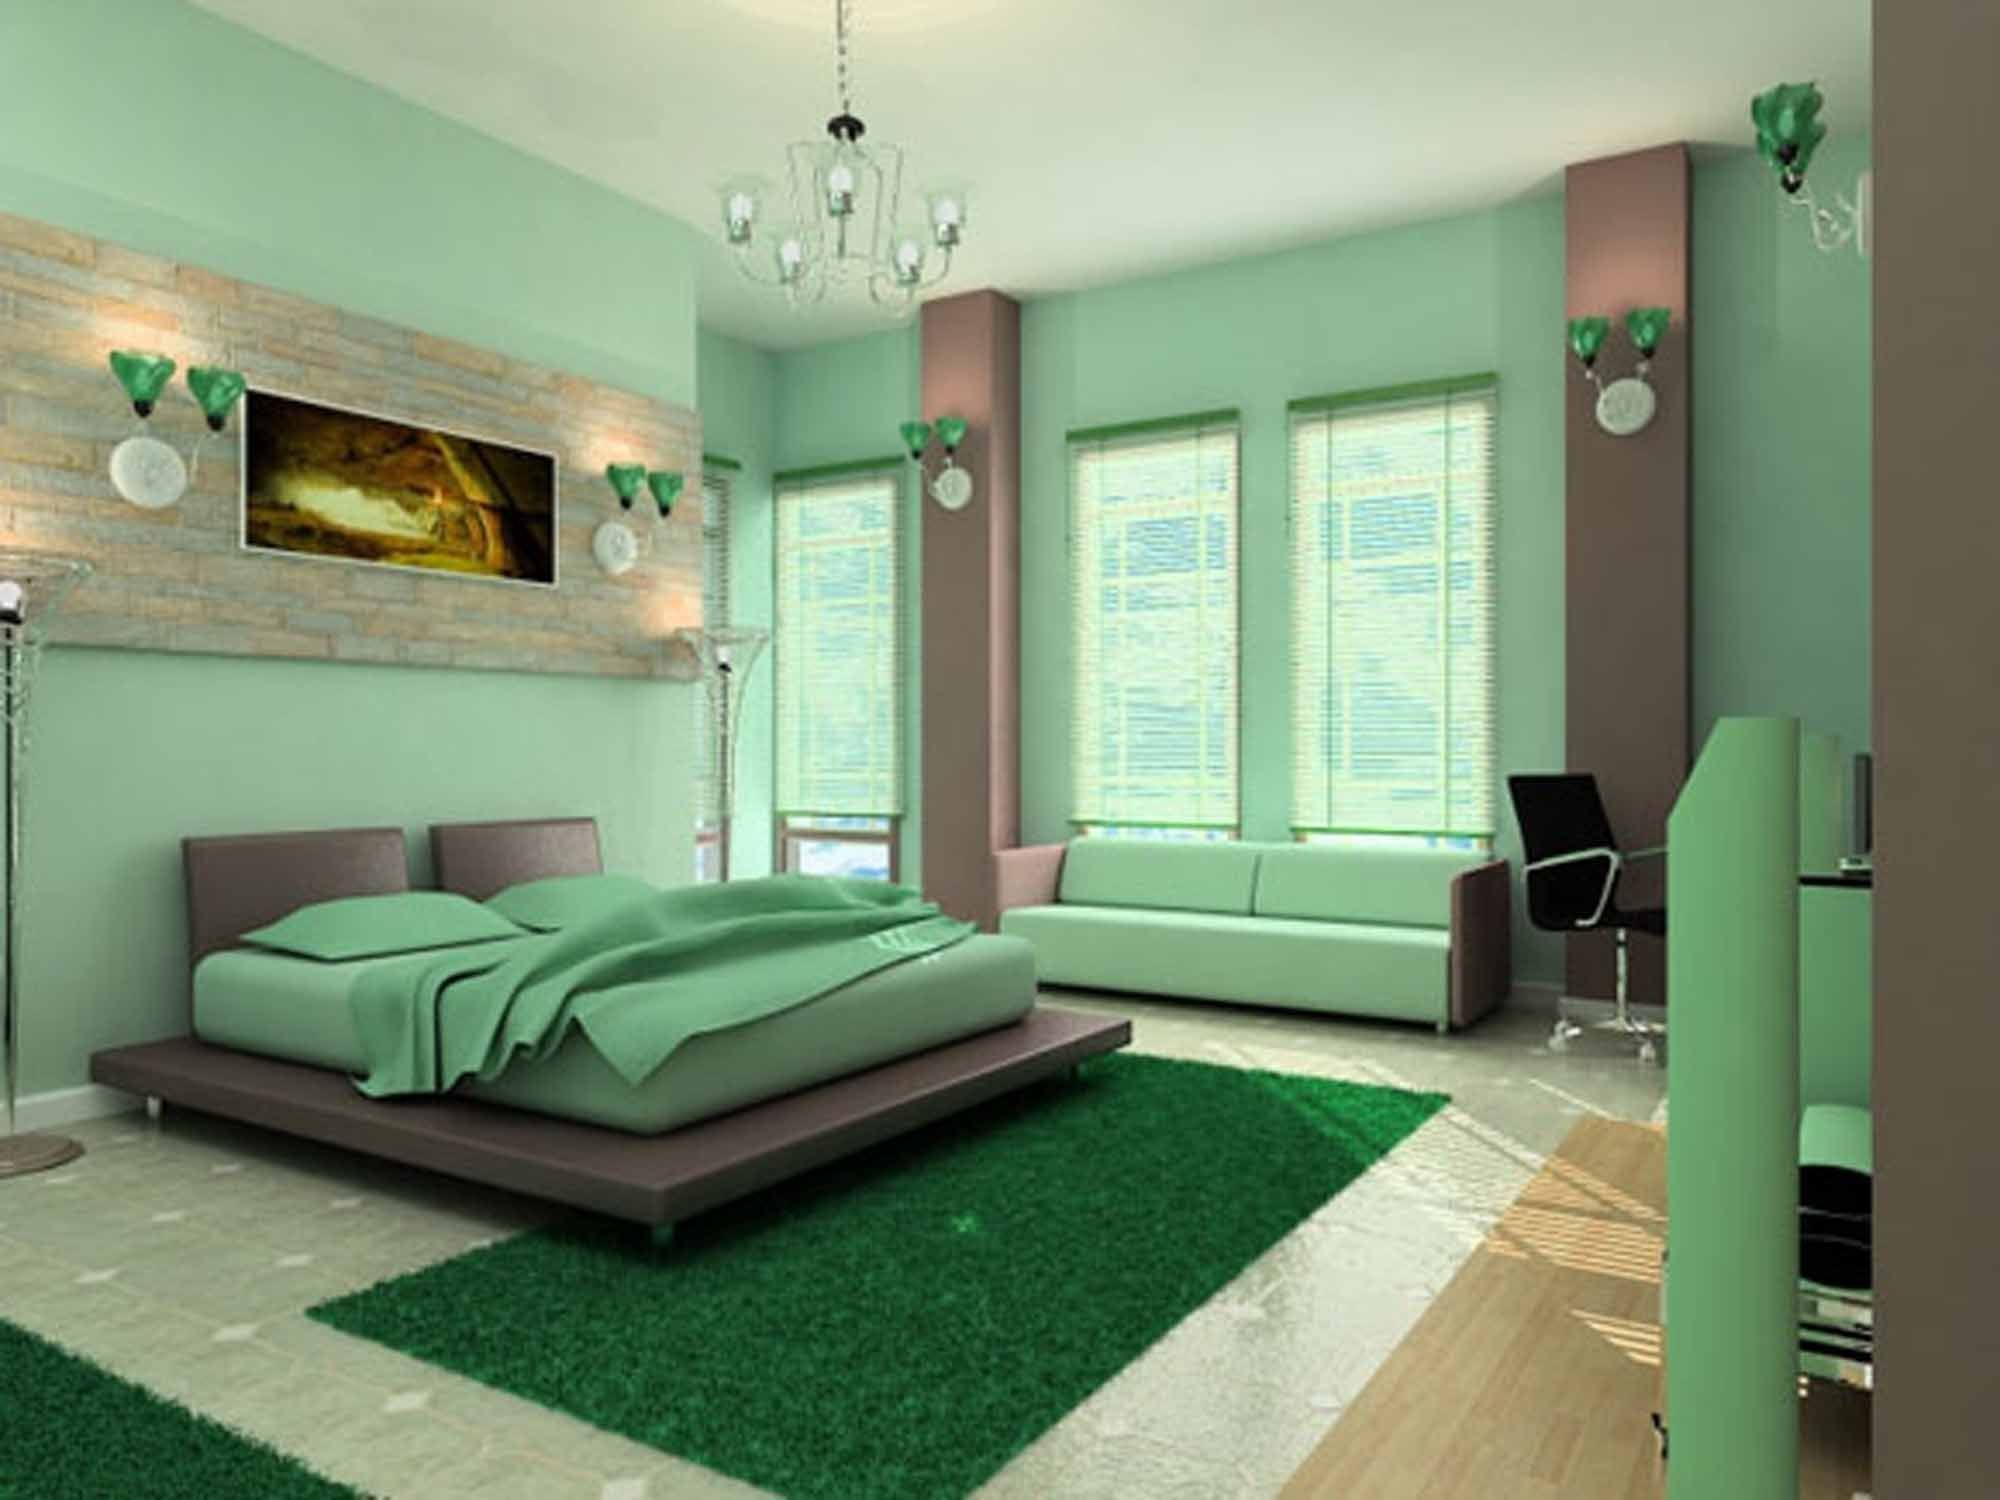 Fresh Green Mint Color Warm Colors Bedrooms Wall Fresh Green. Bedroom Colors Ideas Green   Interior Design